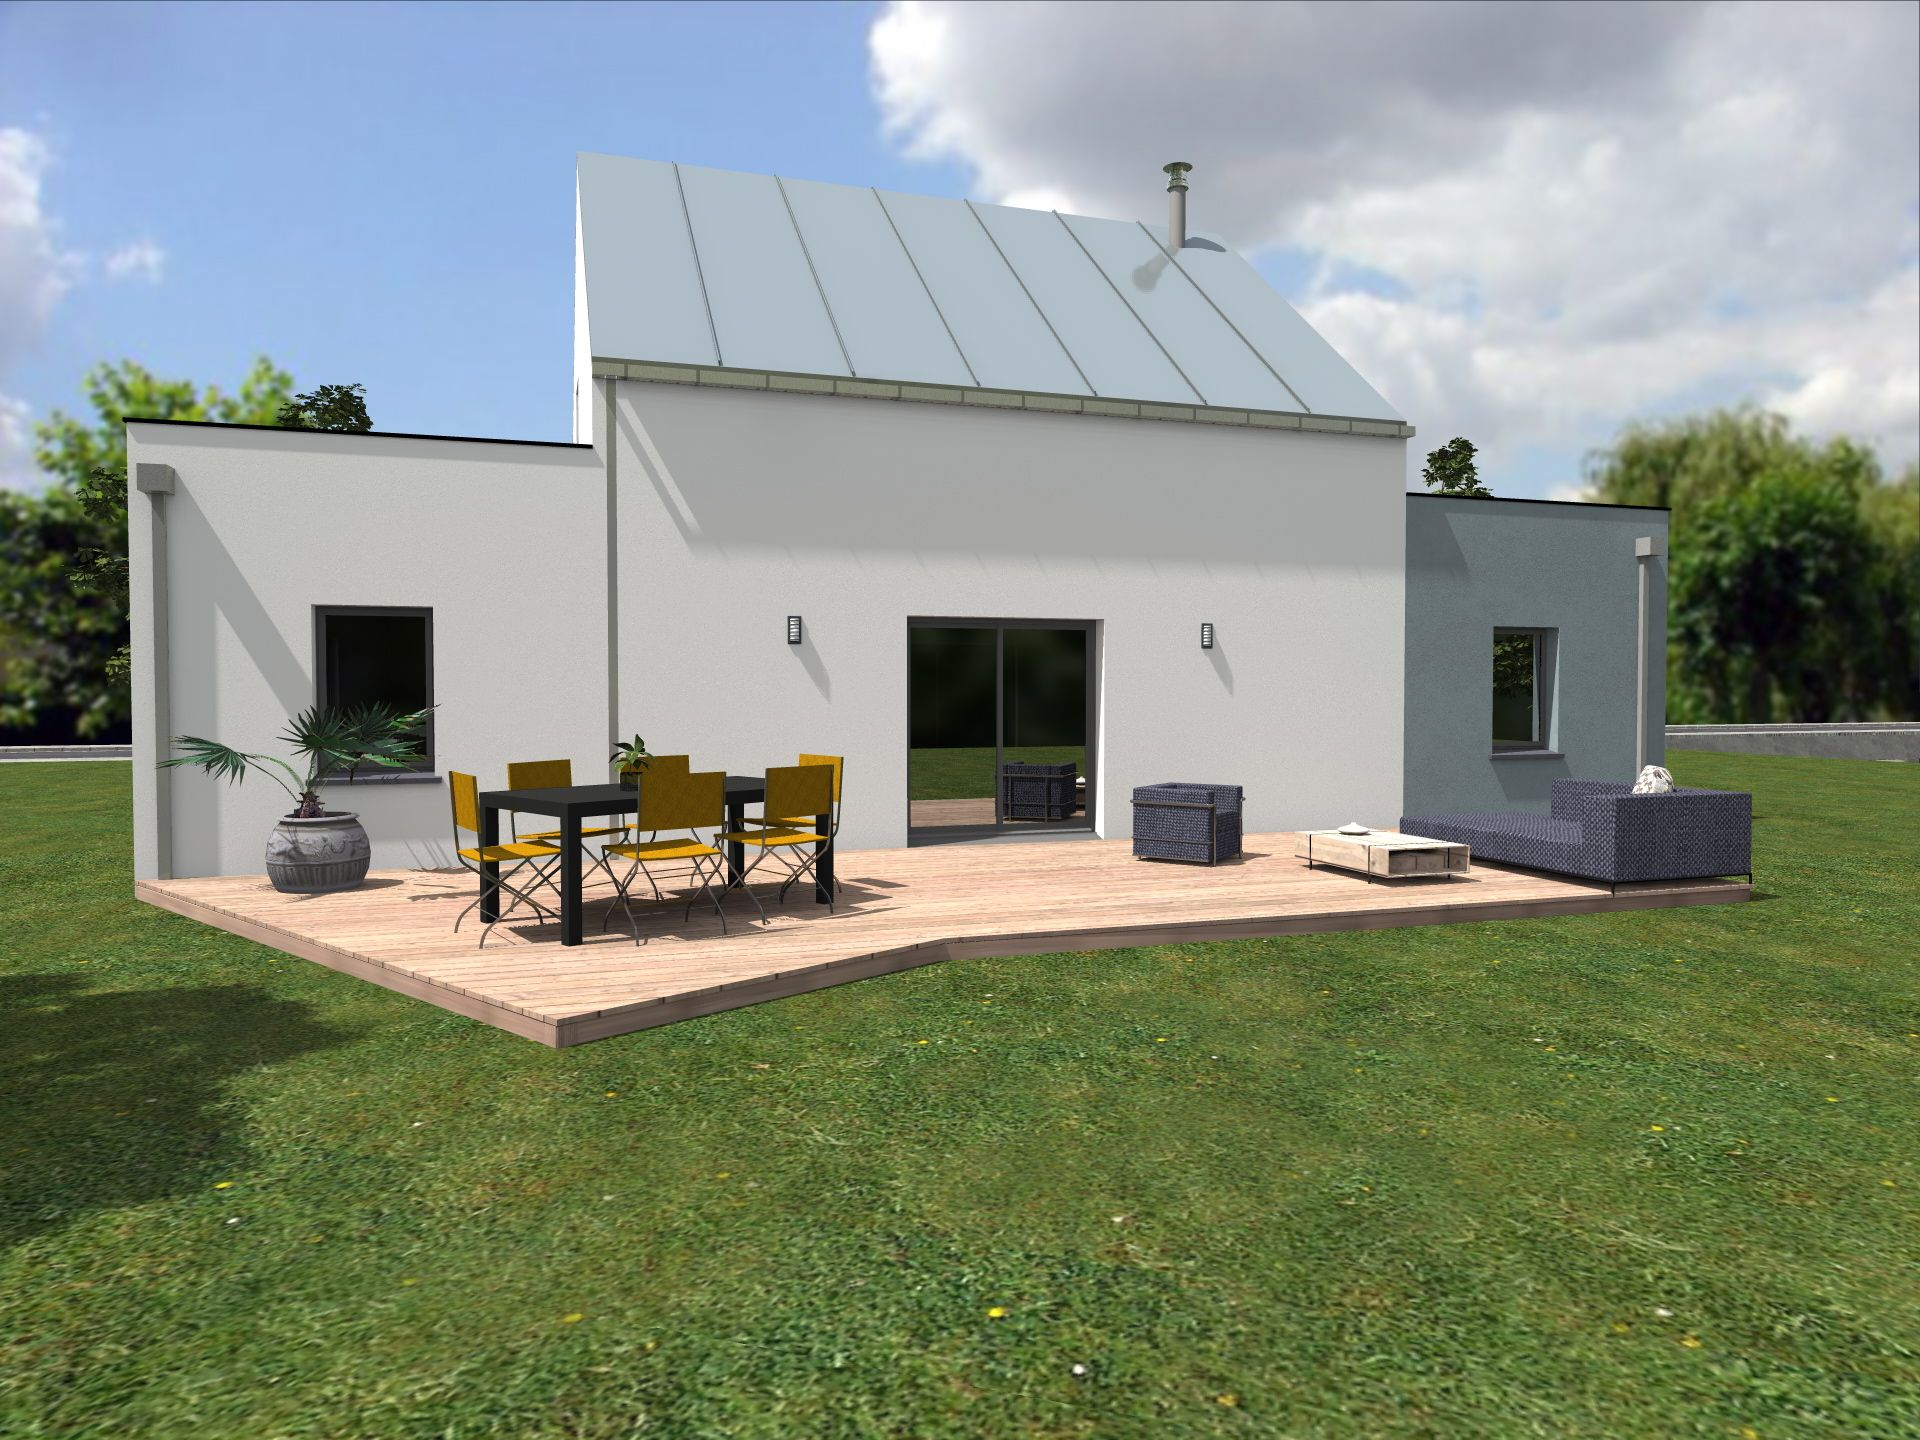 Vue arri re de la perspective 3d du plan de maison alissi propos par alliance construction for Maison contemporaine vendee